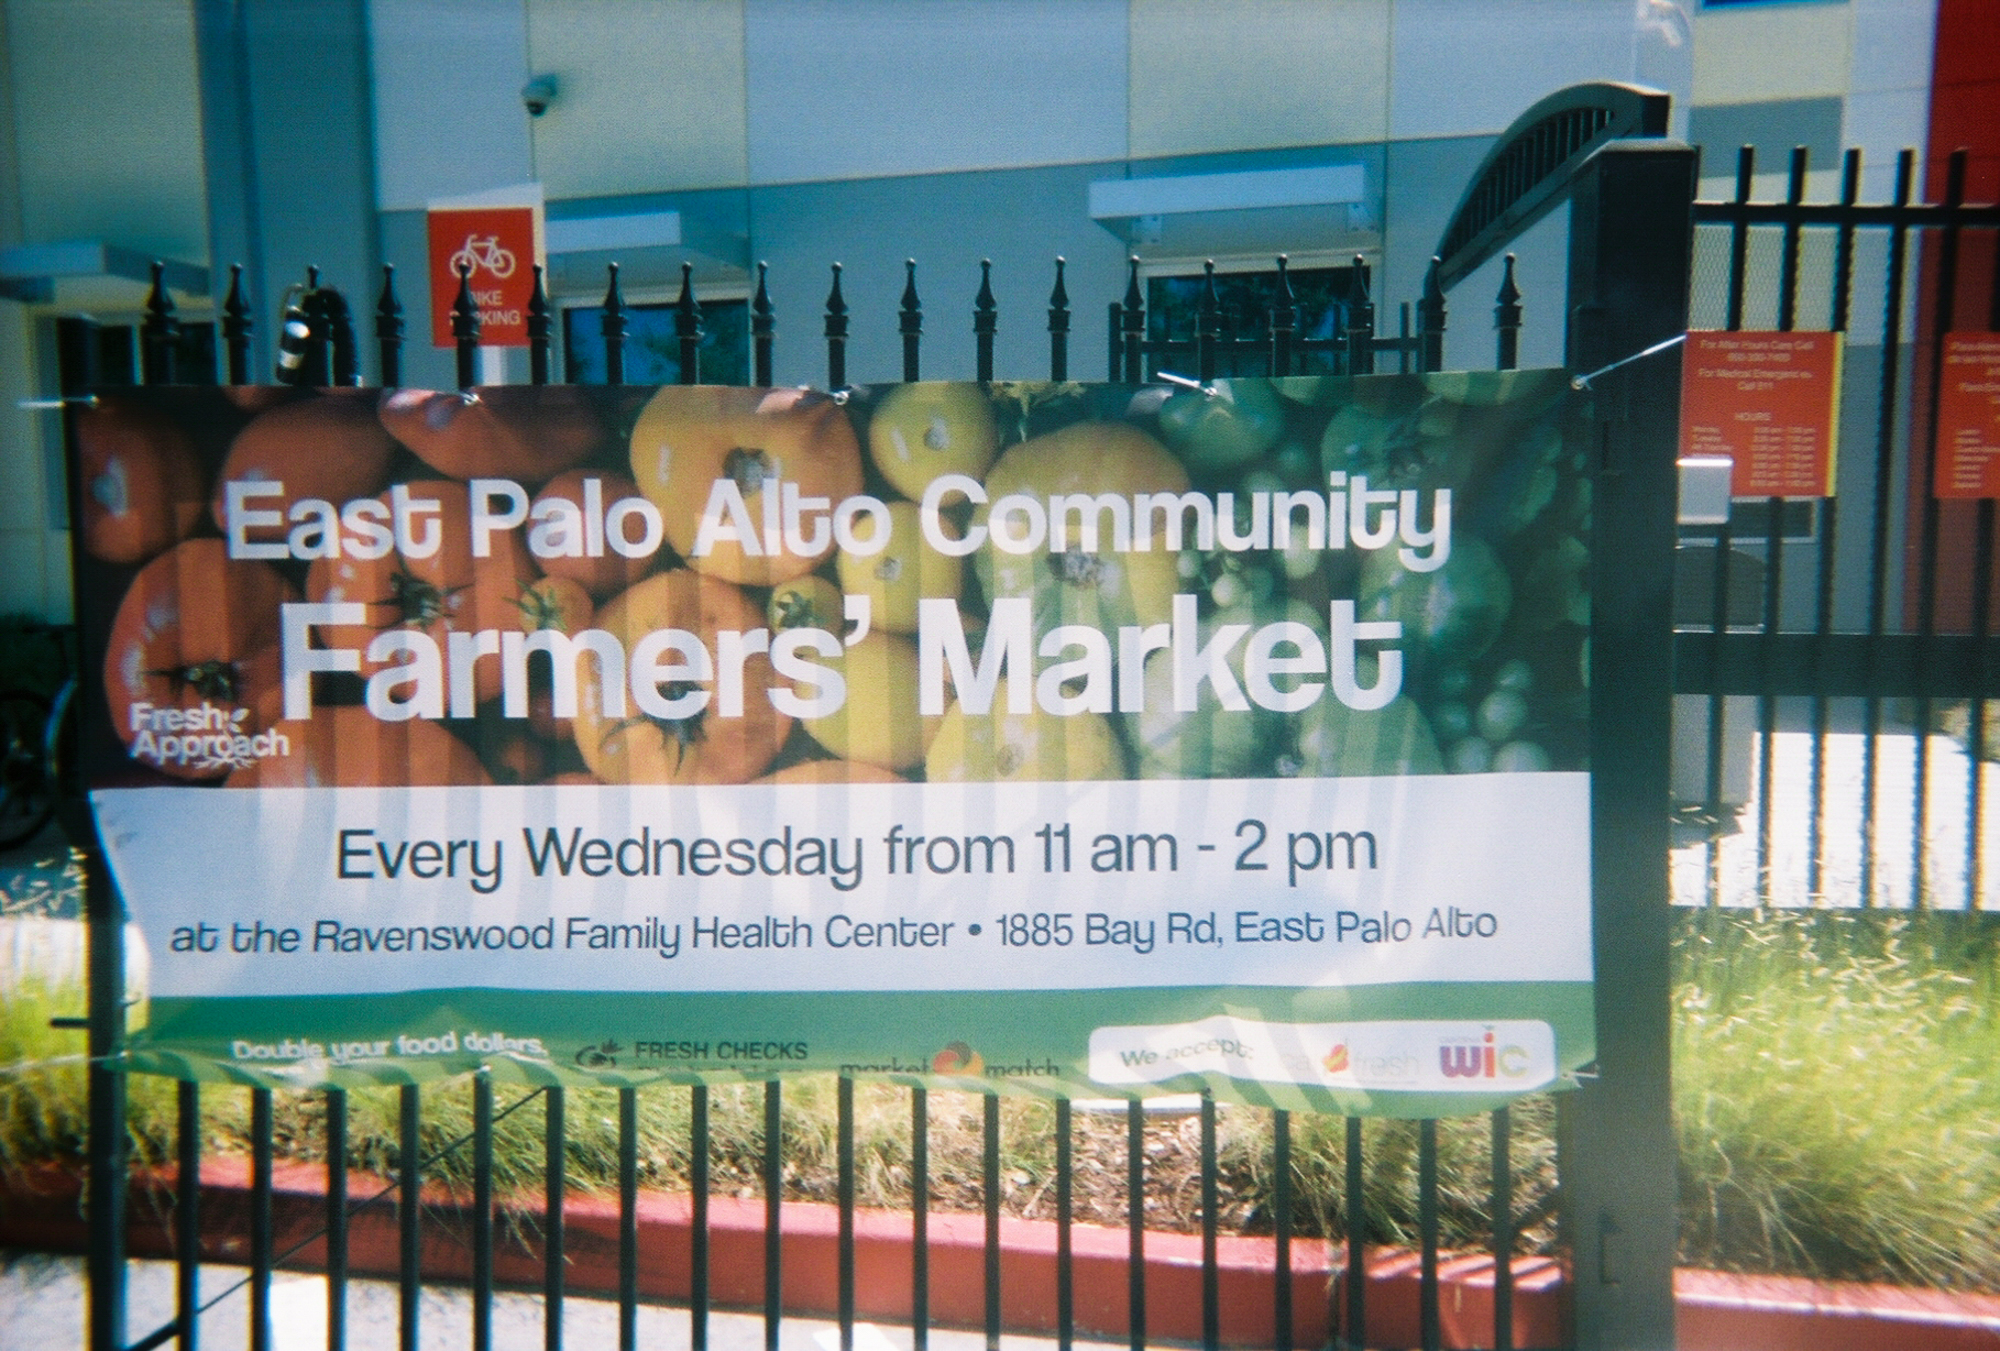 The East Palo Alto Farmers Market is held Wednesdays from 11 a.m. to 2 p.m. at the Ravenswood Family Health Center at 1885 Bay Rd. It accepts CalFresh and coupons from the WIC Farmers' Market Nutrition Program for women and children in addition to cash and credit cards. (Photo by Yahari Mendoza, 11.)